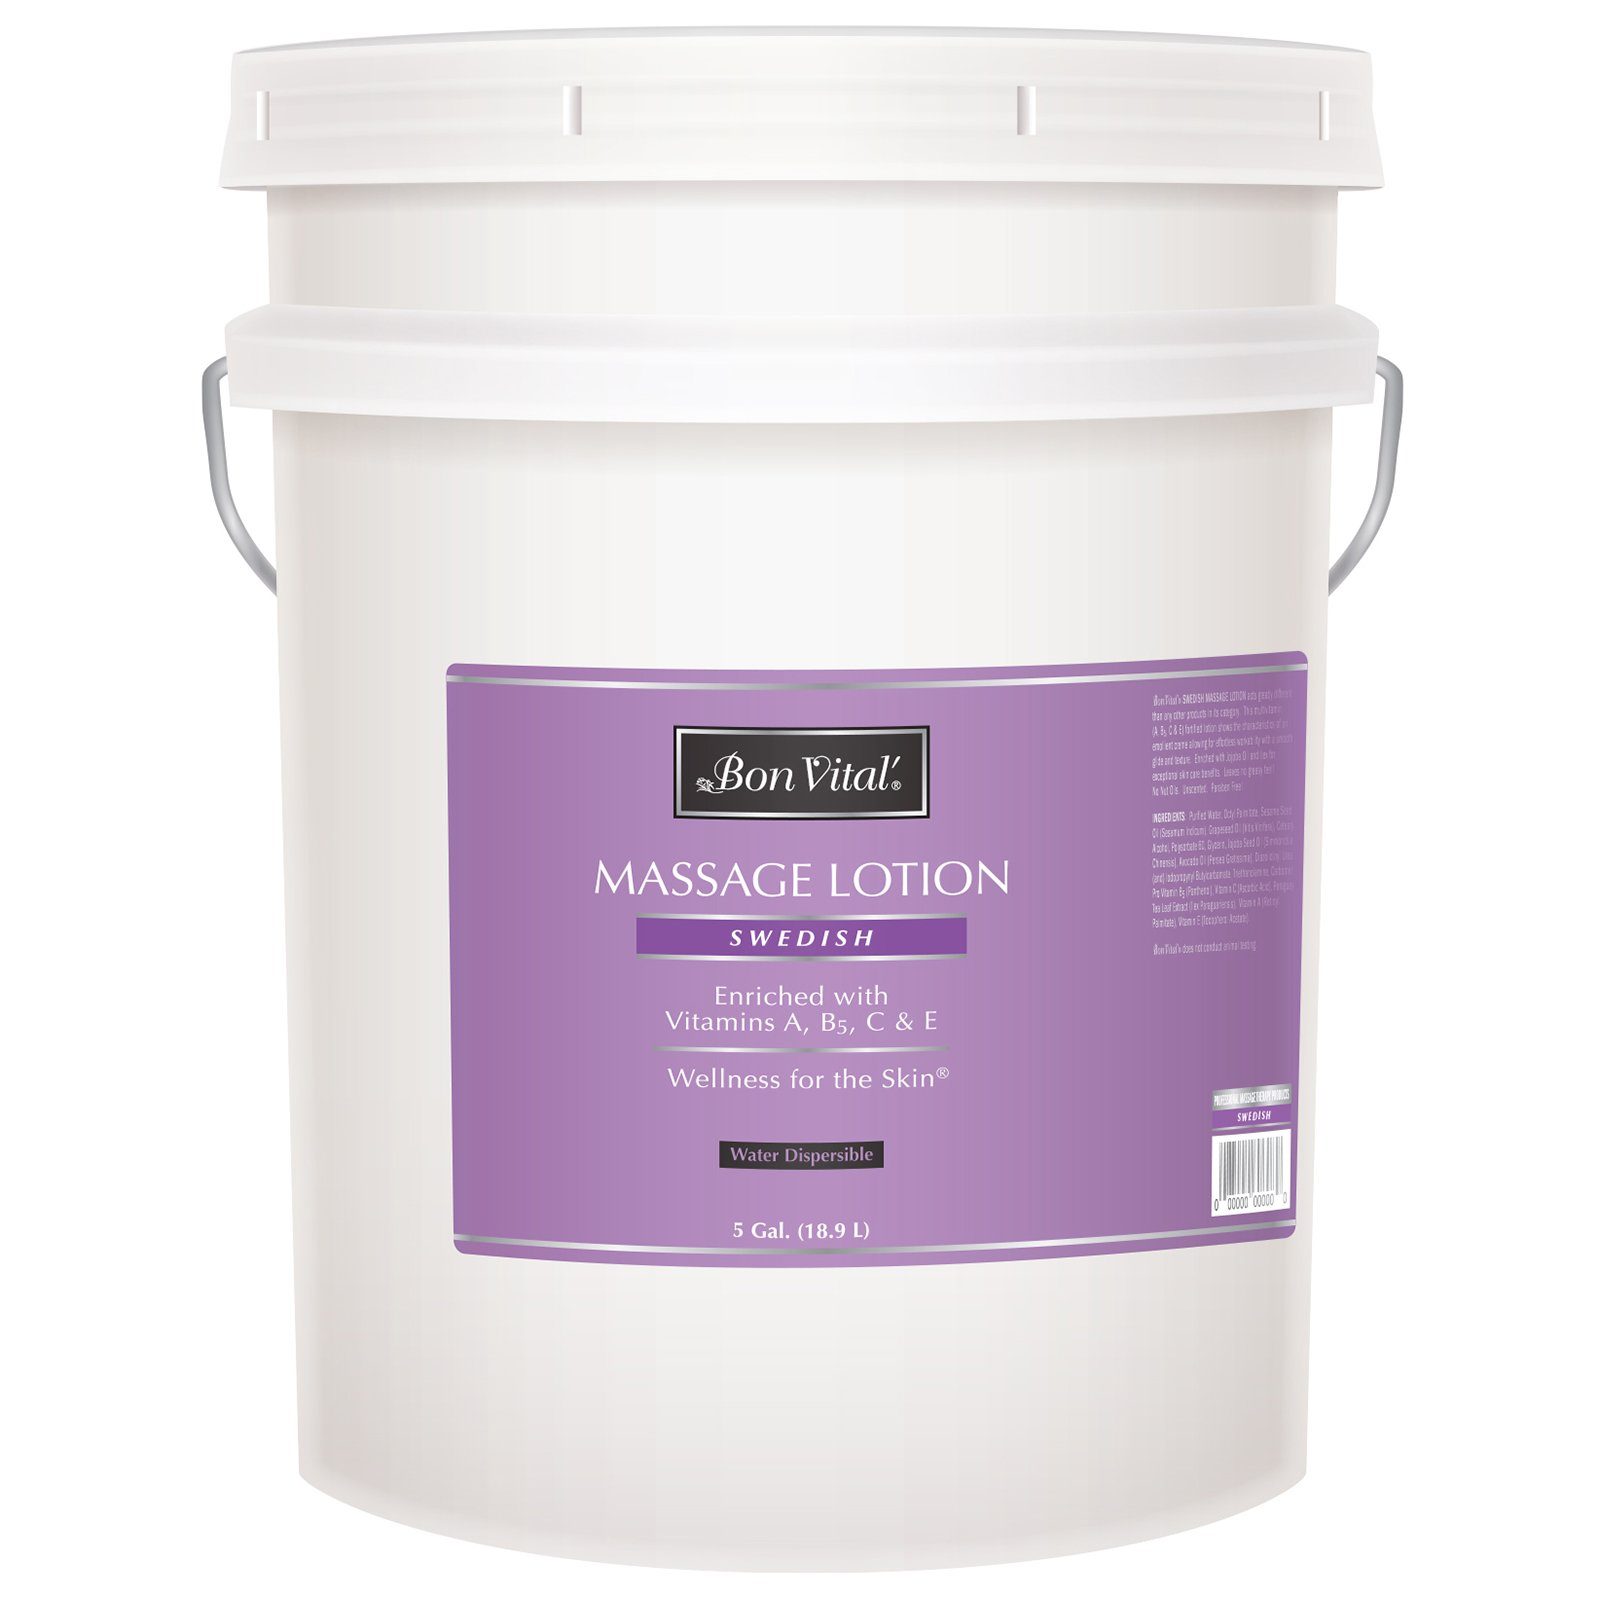 Bon Vital' Swedish Massage Lotion for Skin Tone Improvement, Dry Skin Repair, Increased Circulation, and Stress Relief, Great for Massage Therapists Who Perform Swedish and Sports Massages, 5 Gallon